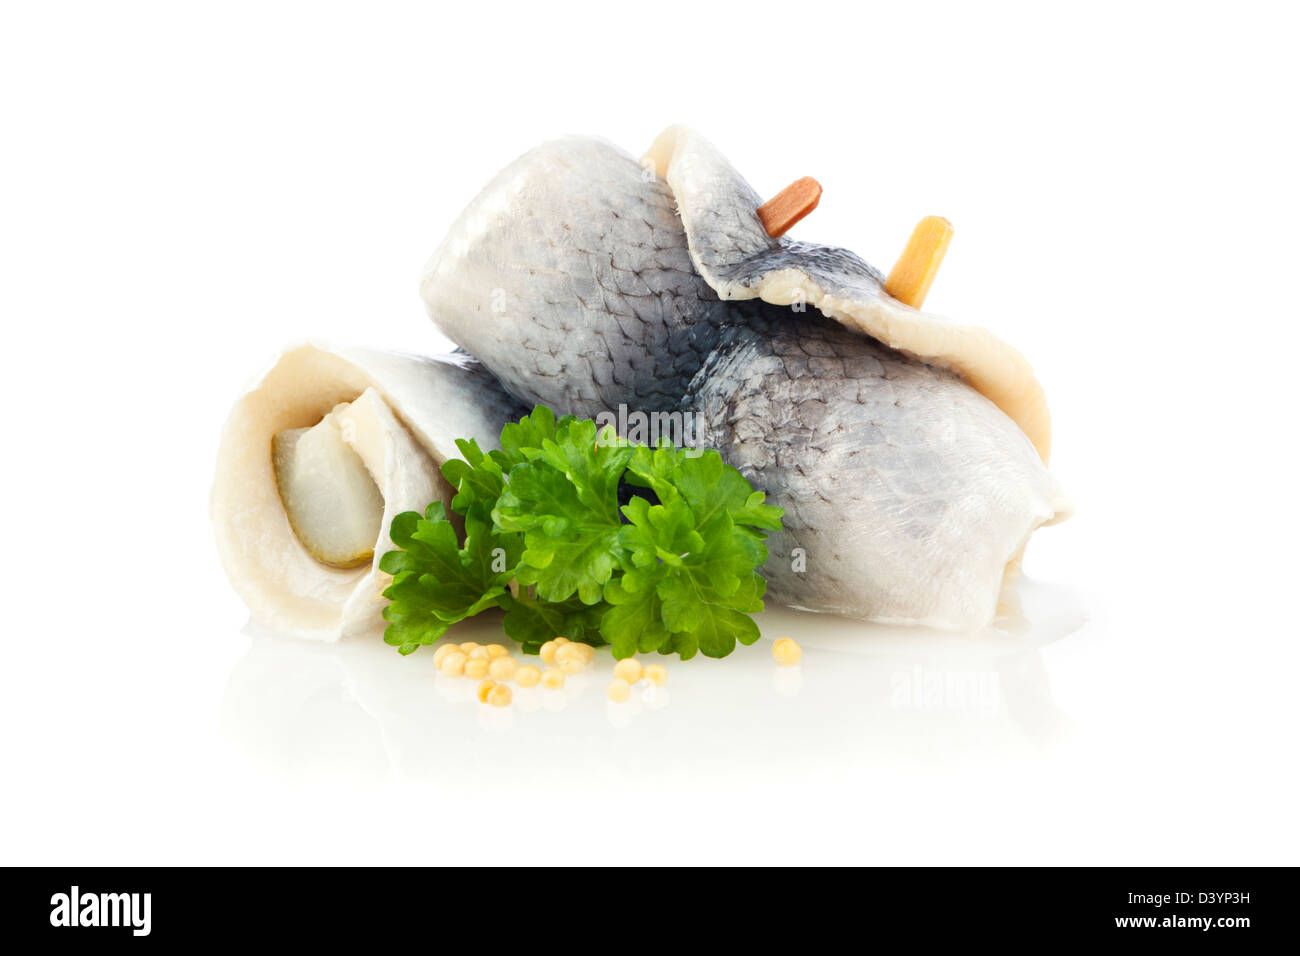 German Rollmops - kipper wrapped around pickled cucumber, garnished with parsley and mustard seeds, on white background - Stock Image